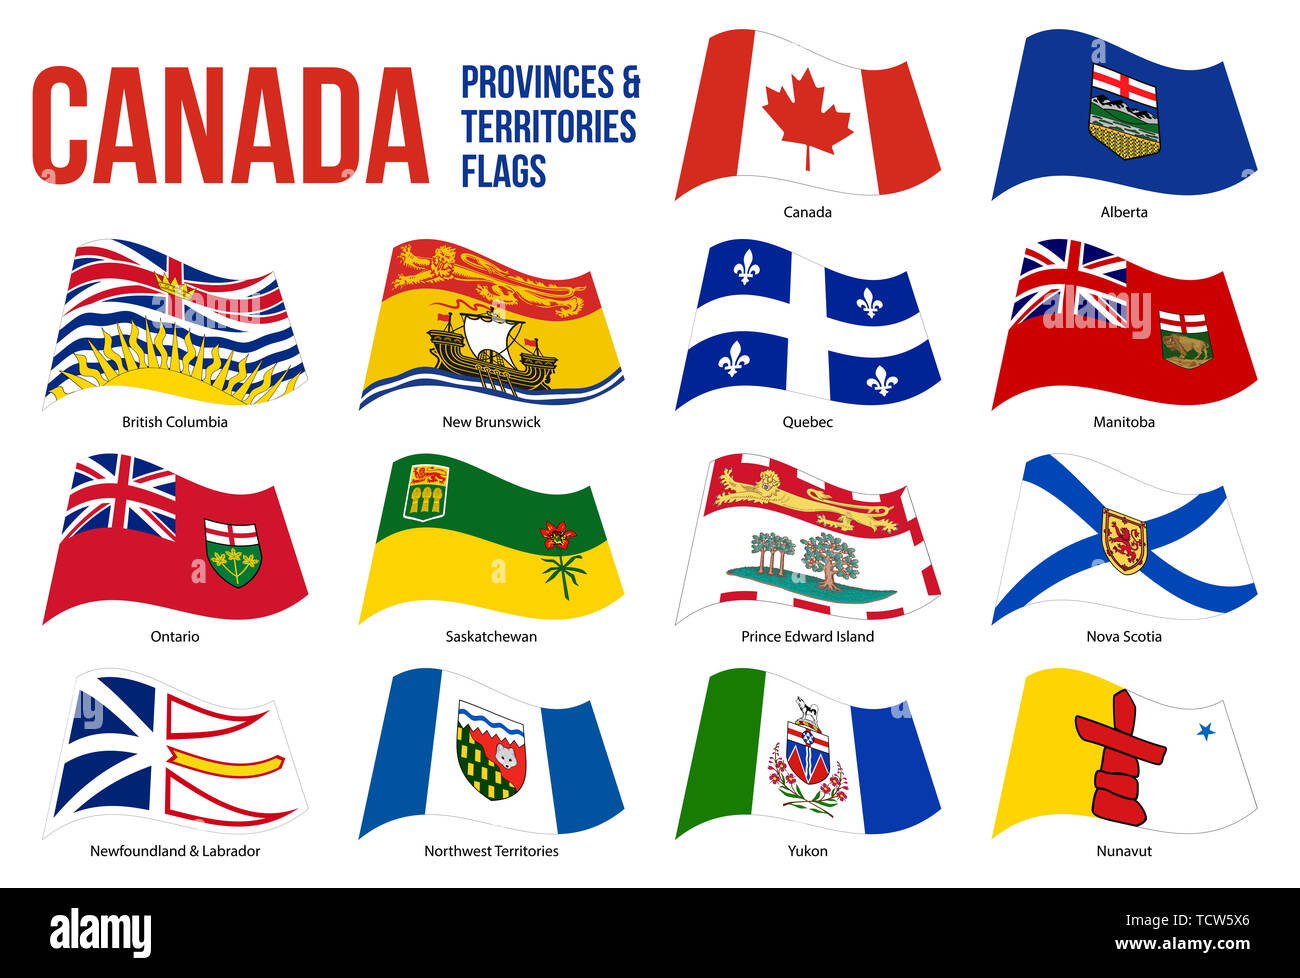 Canada All Provinces & Territories Flag Waving Vector Illustration on White Background. Flags of Canada. Correct Size, Proportion and Colors. - Stock Image